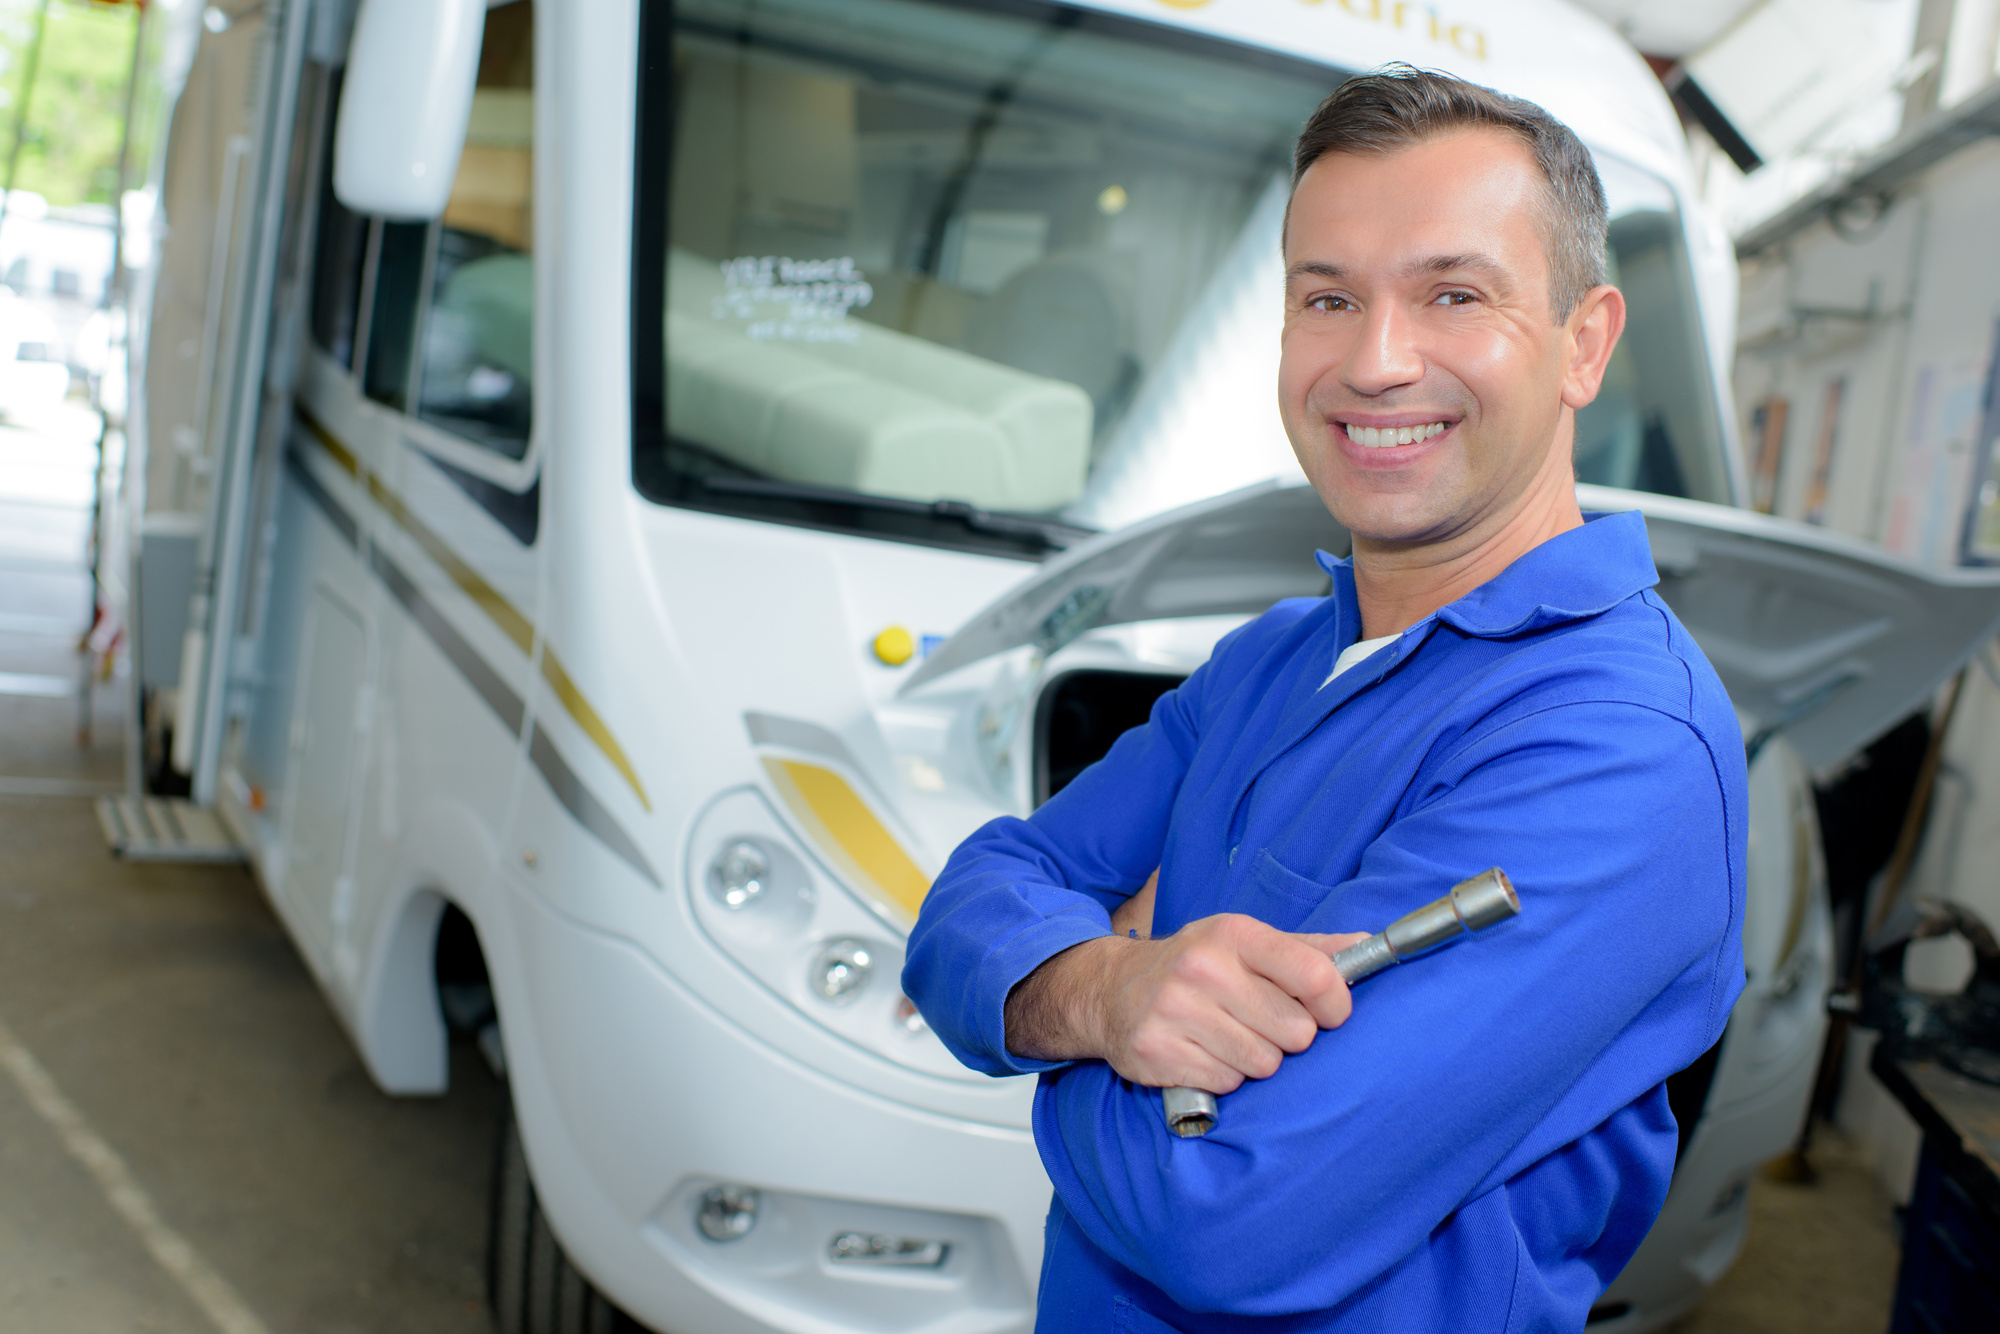 RV Maintenance 101: 5 Cleaning and Care Tips for RV Owners